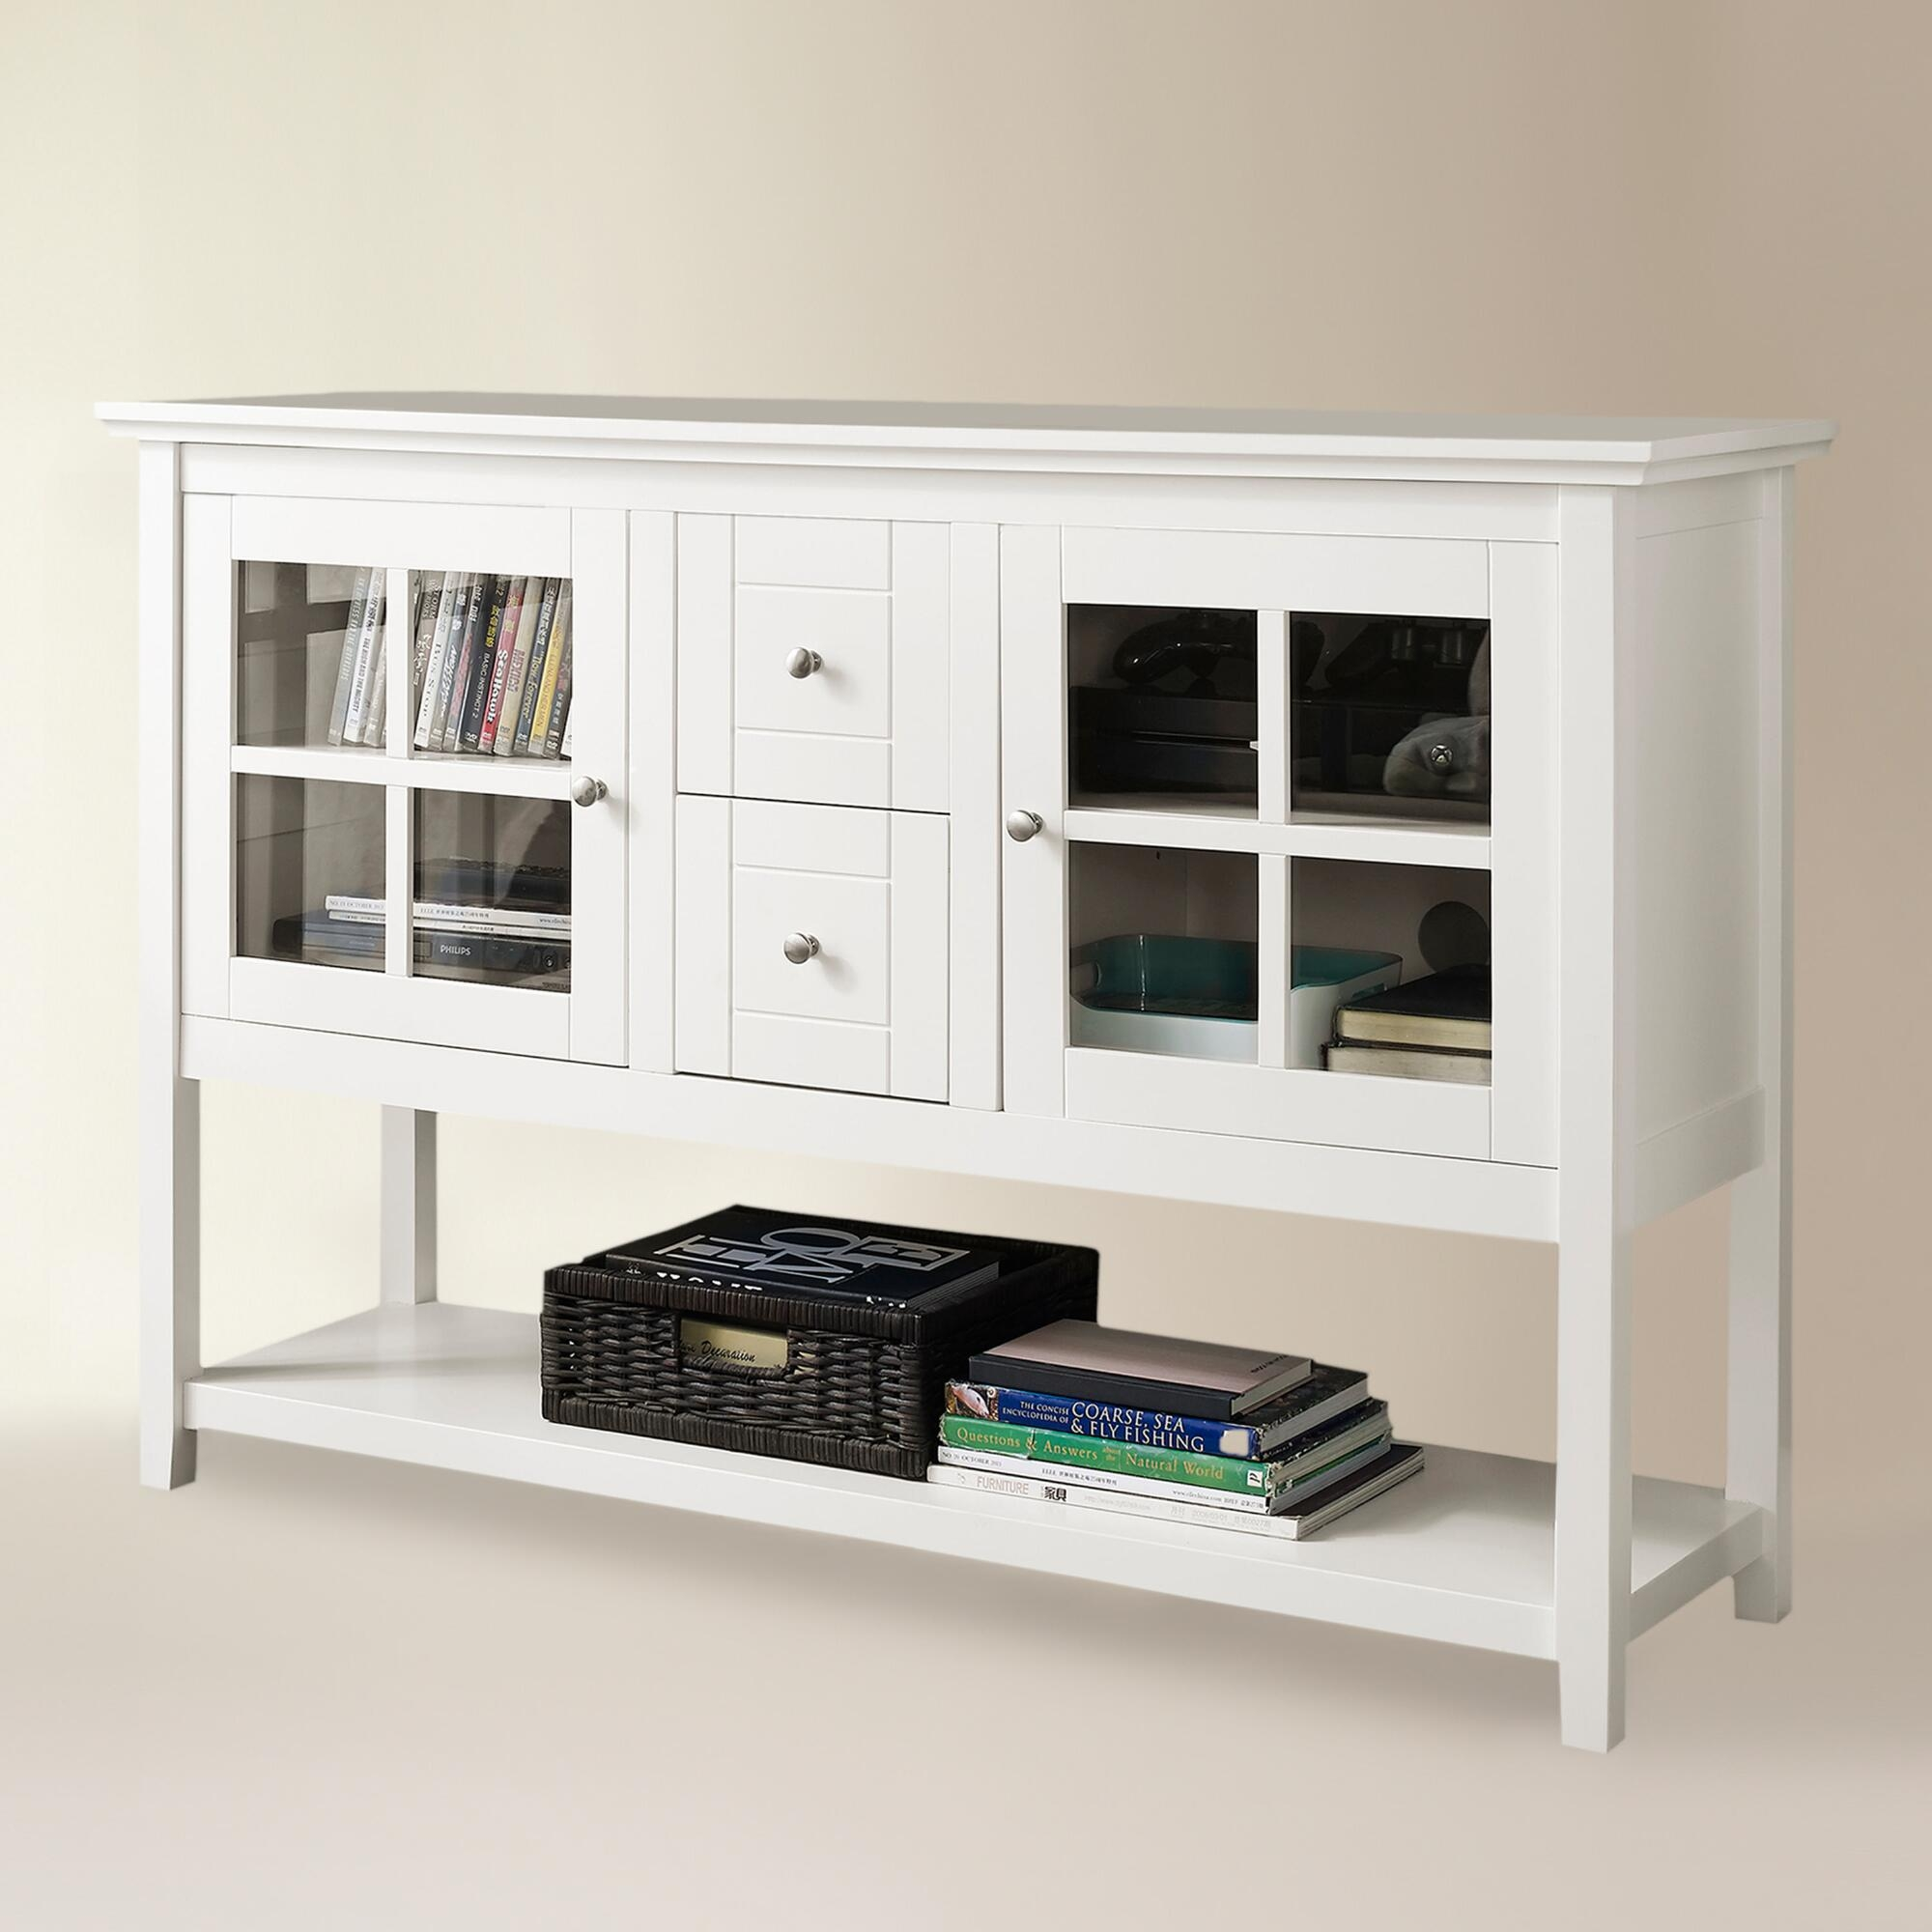 Sylas Standard Bookcase White Solid Wood Bookcase Wayfair 2 Glass In Bookcase With Bottom Cabinets (#12 of 15)